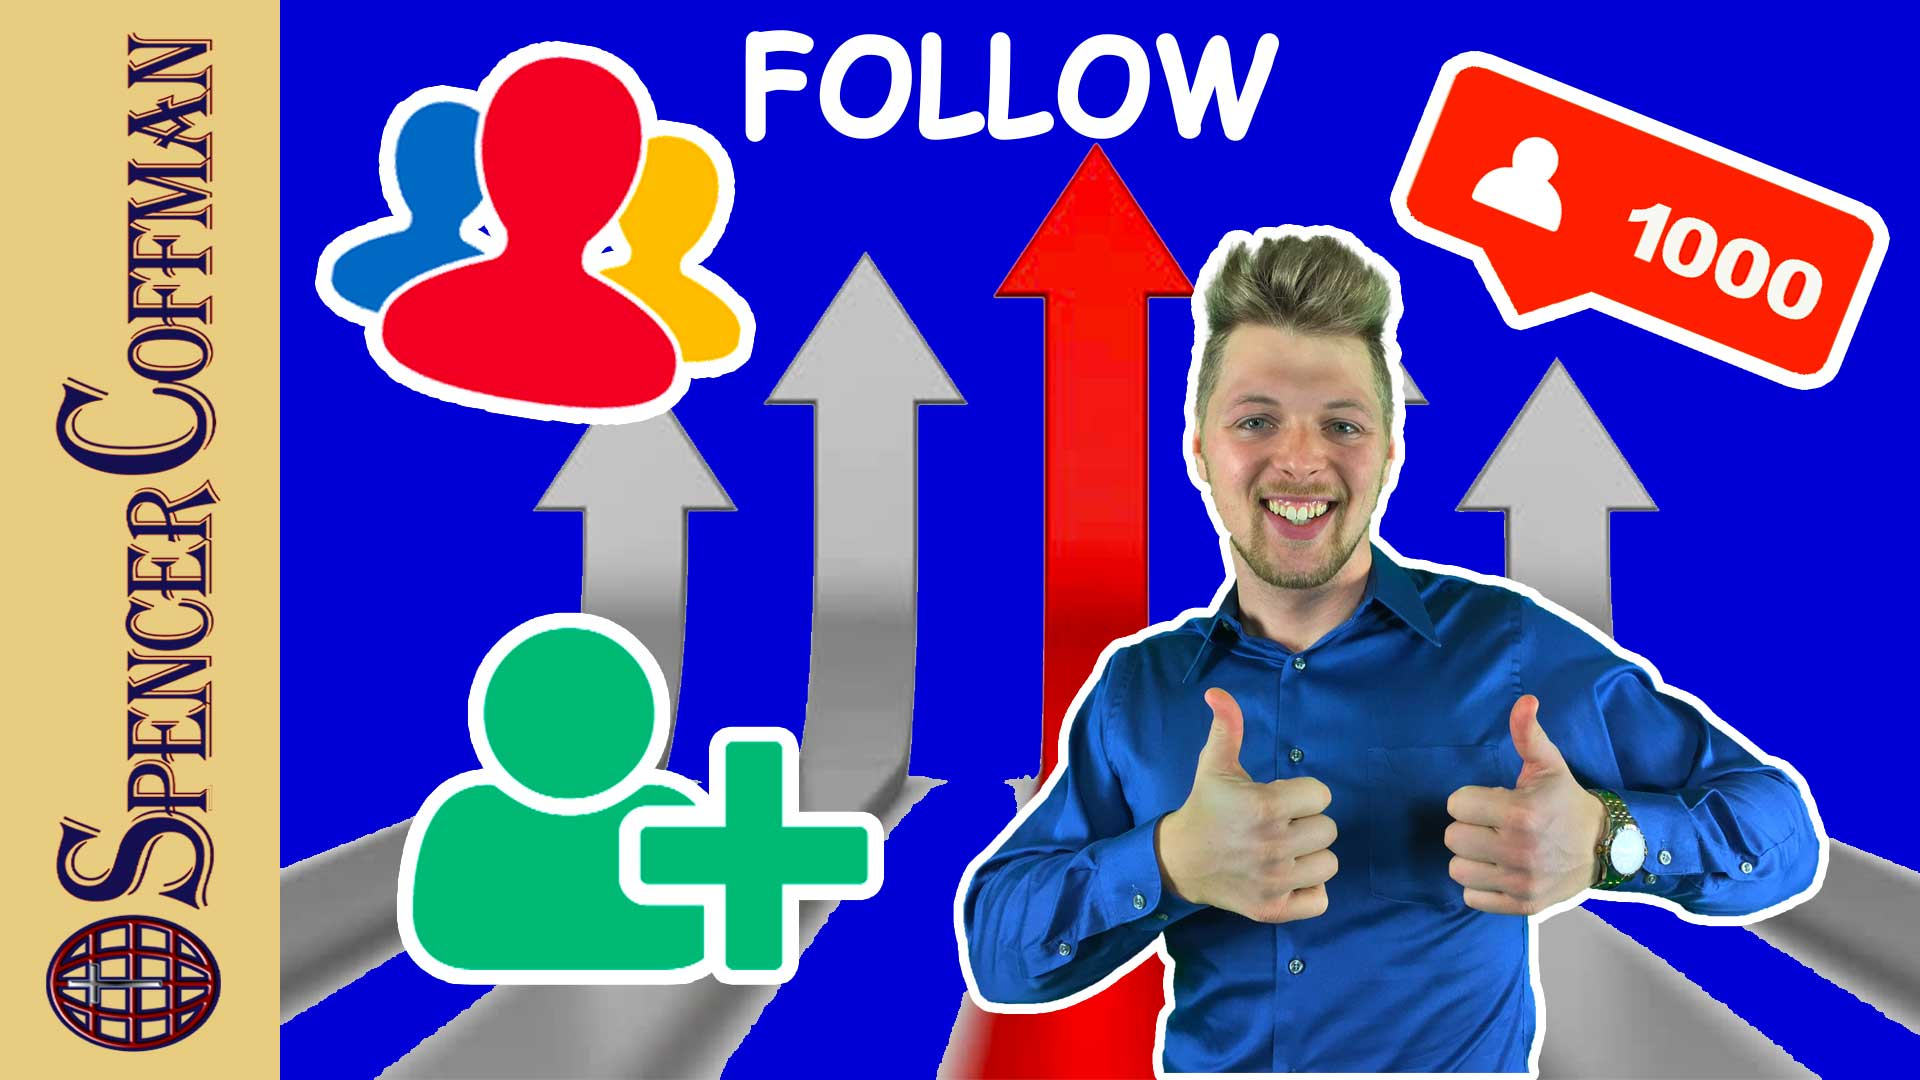 Best 3 Ways To Rapidly Grow Your Blog Followers On Steemit